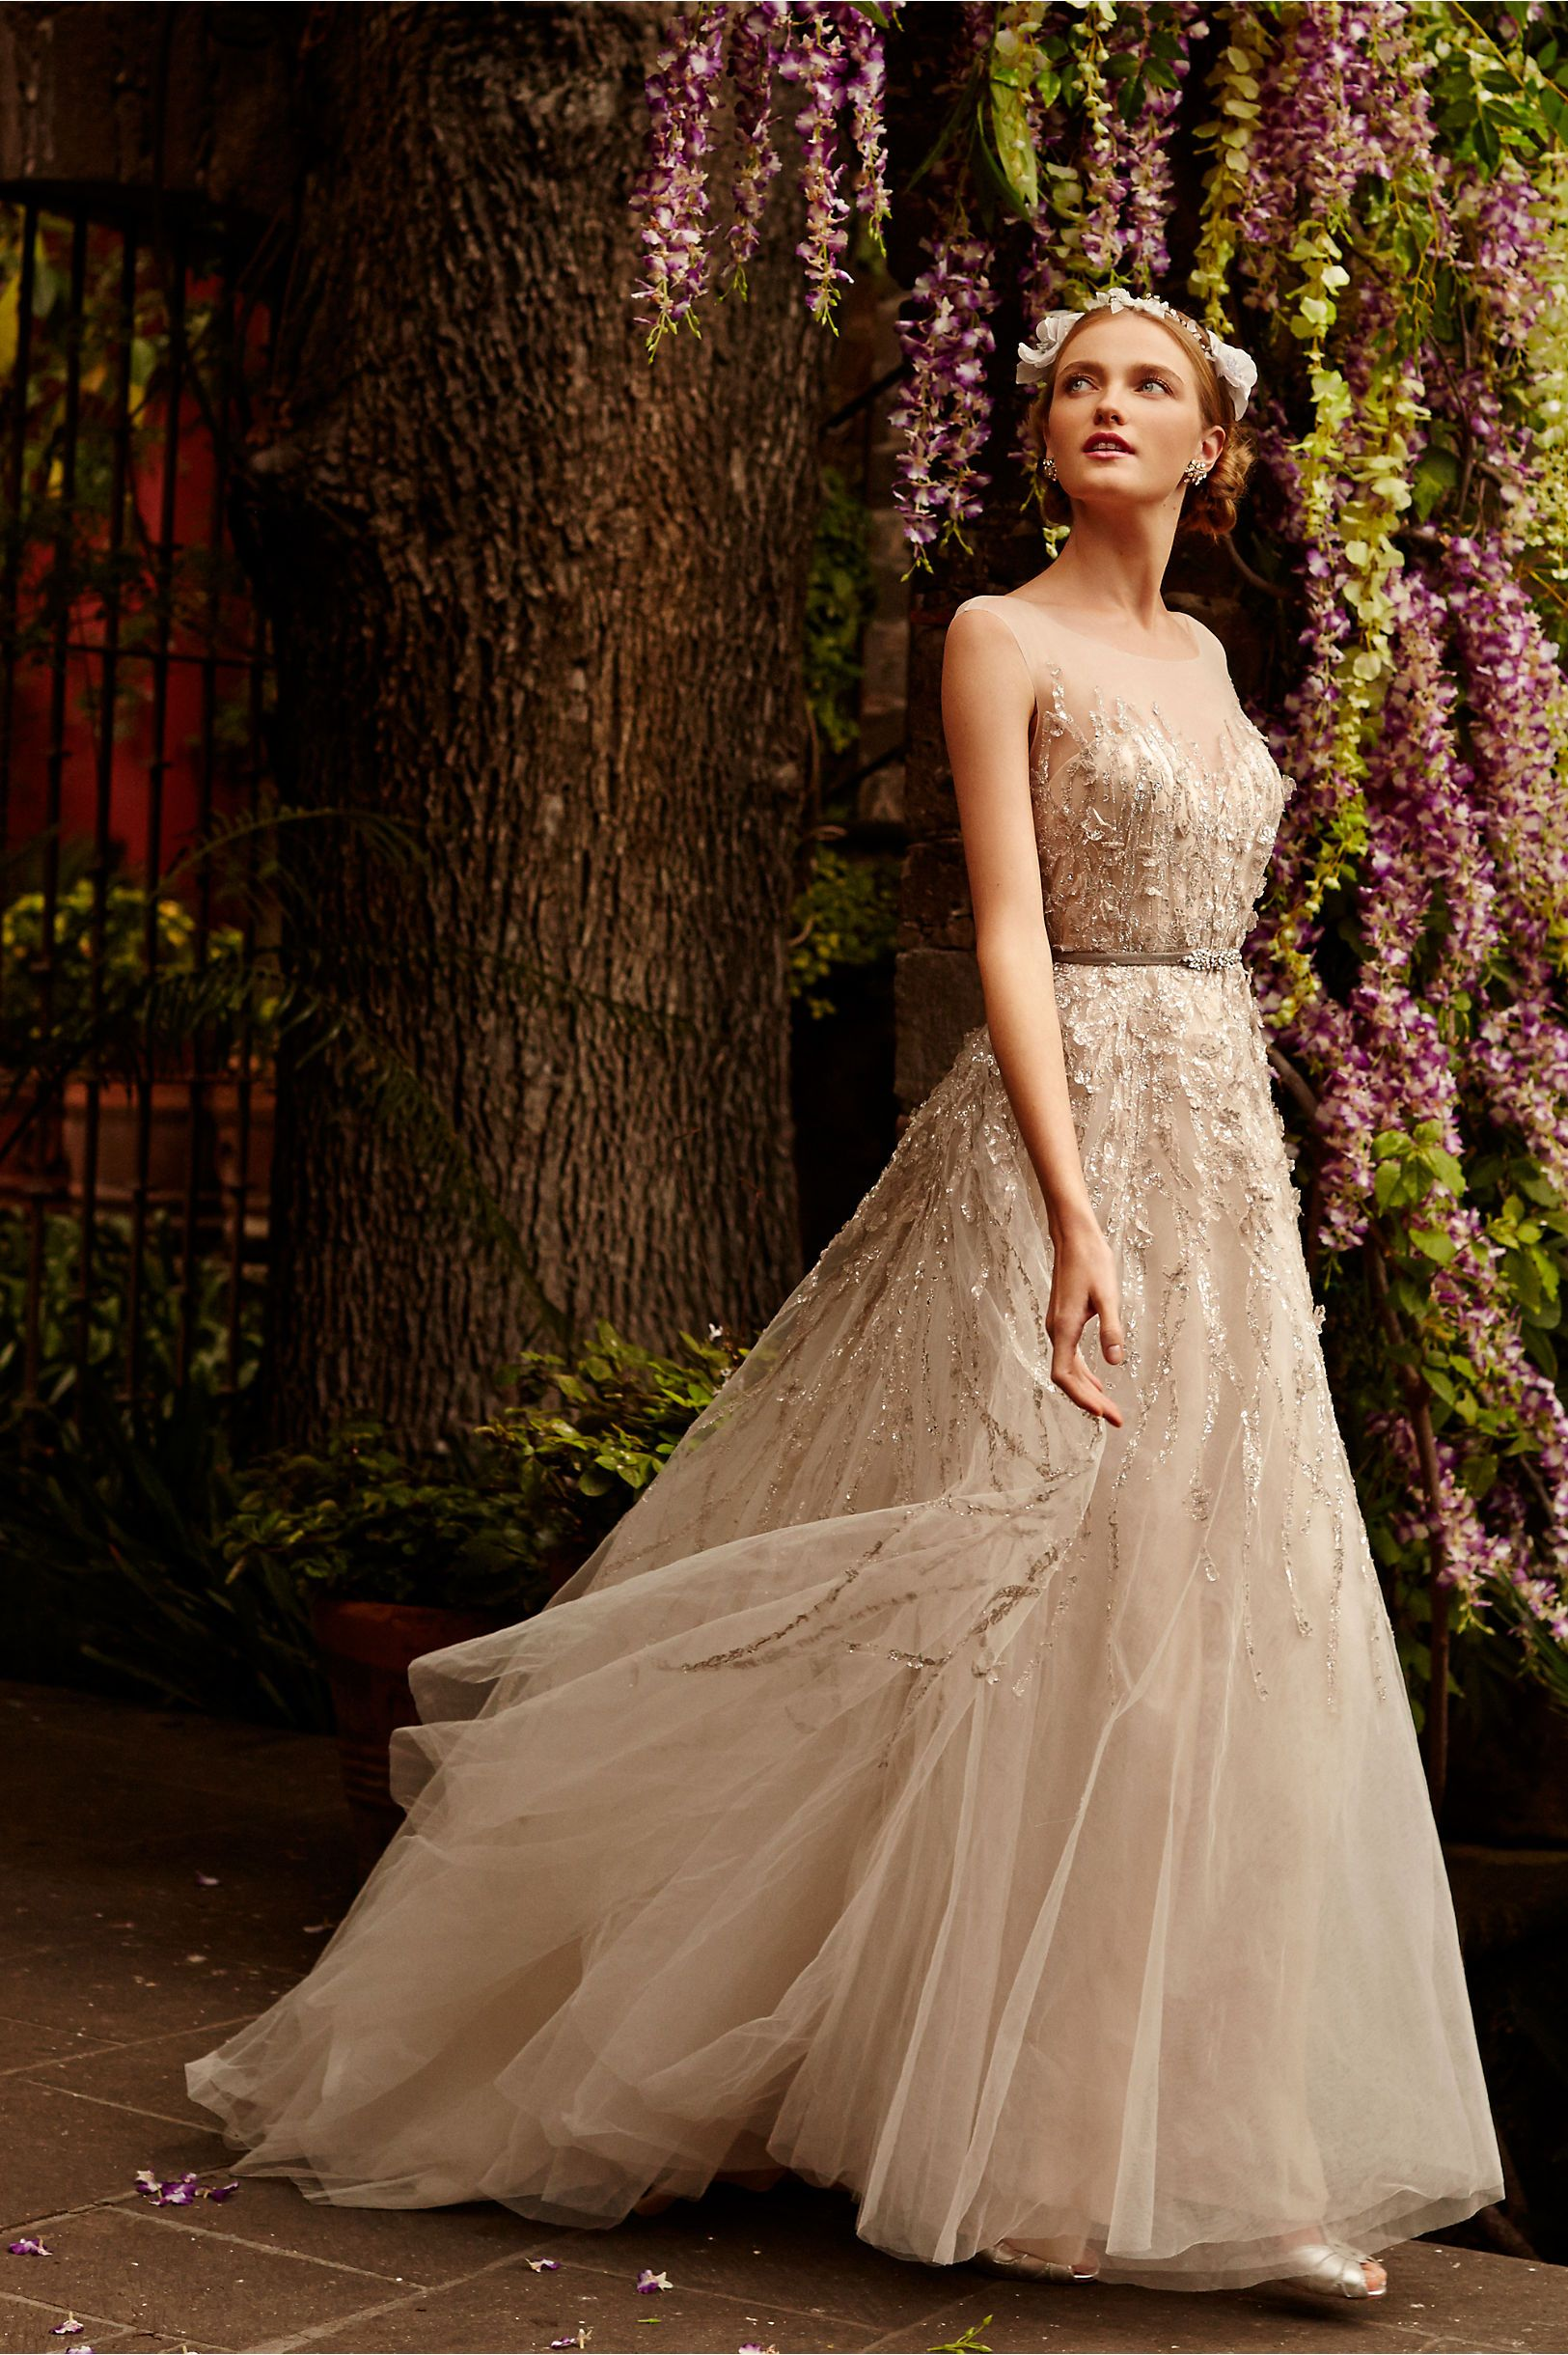 Fall outdoor wedding dresses  Wisteria Gown from BHLDN  wedding  Pinterest  Wisteria Gowns